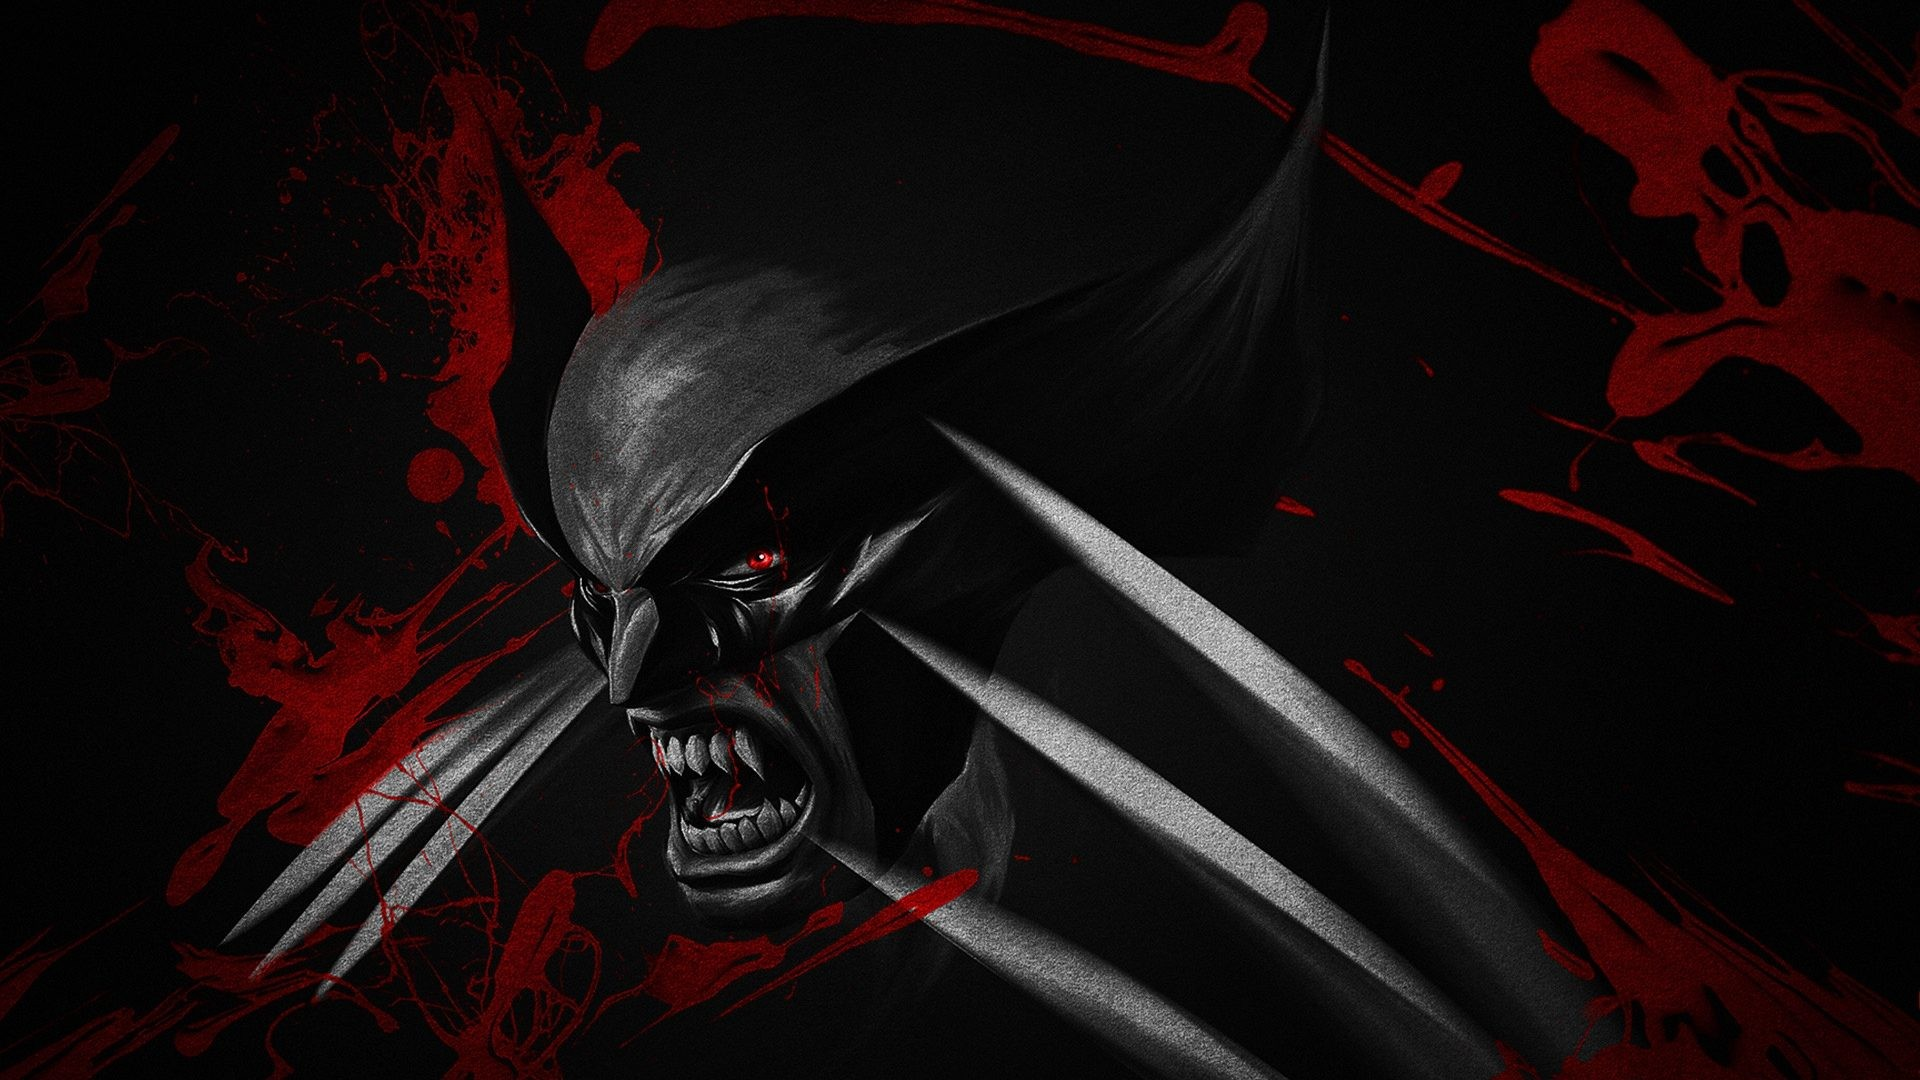 Black And Red Wolverine Copy 4K Wide Uhd Wallpaper – HD Wallpapers